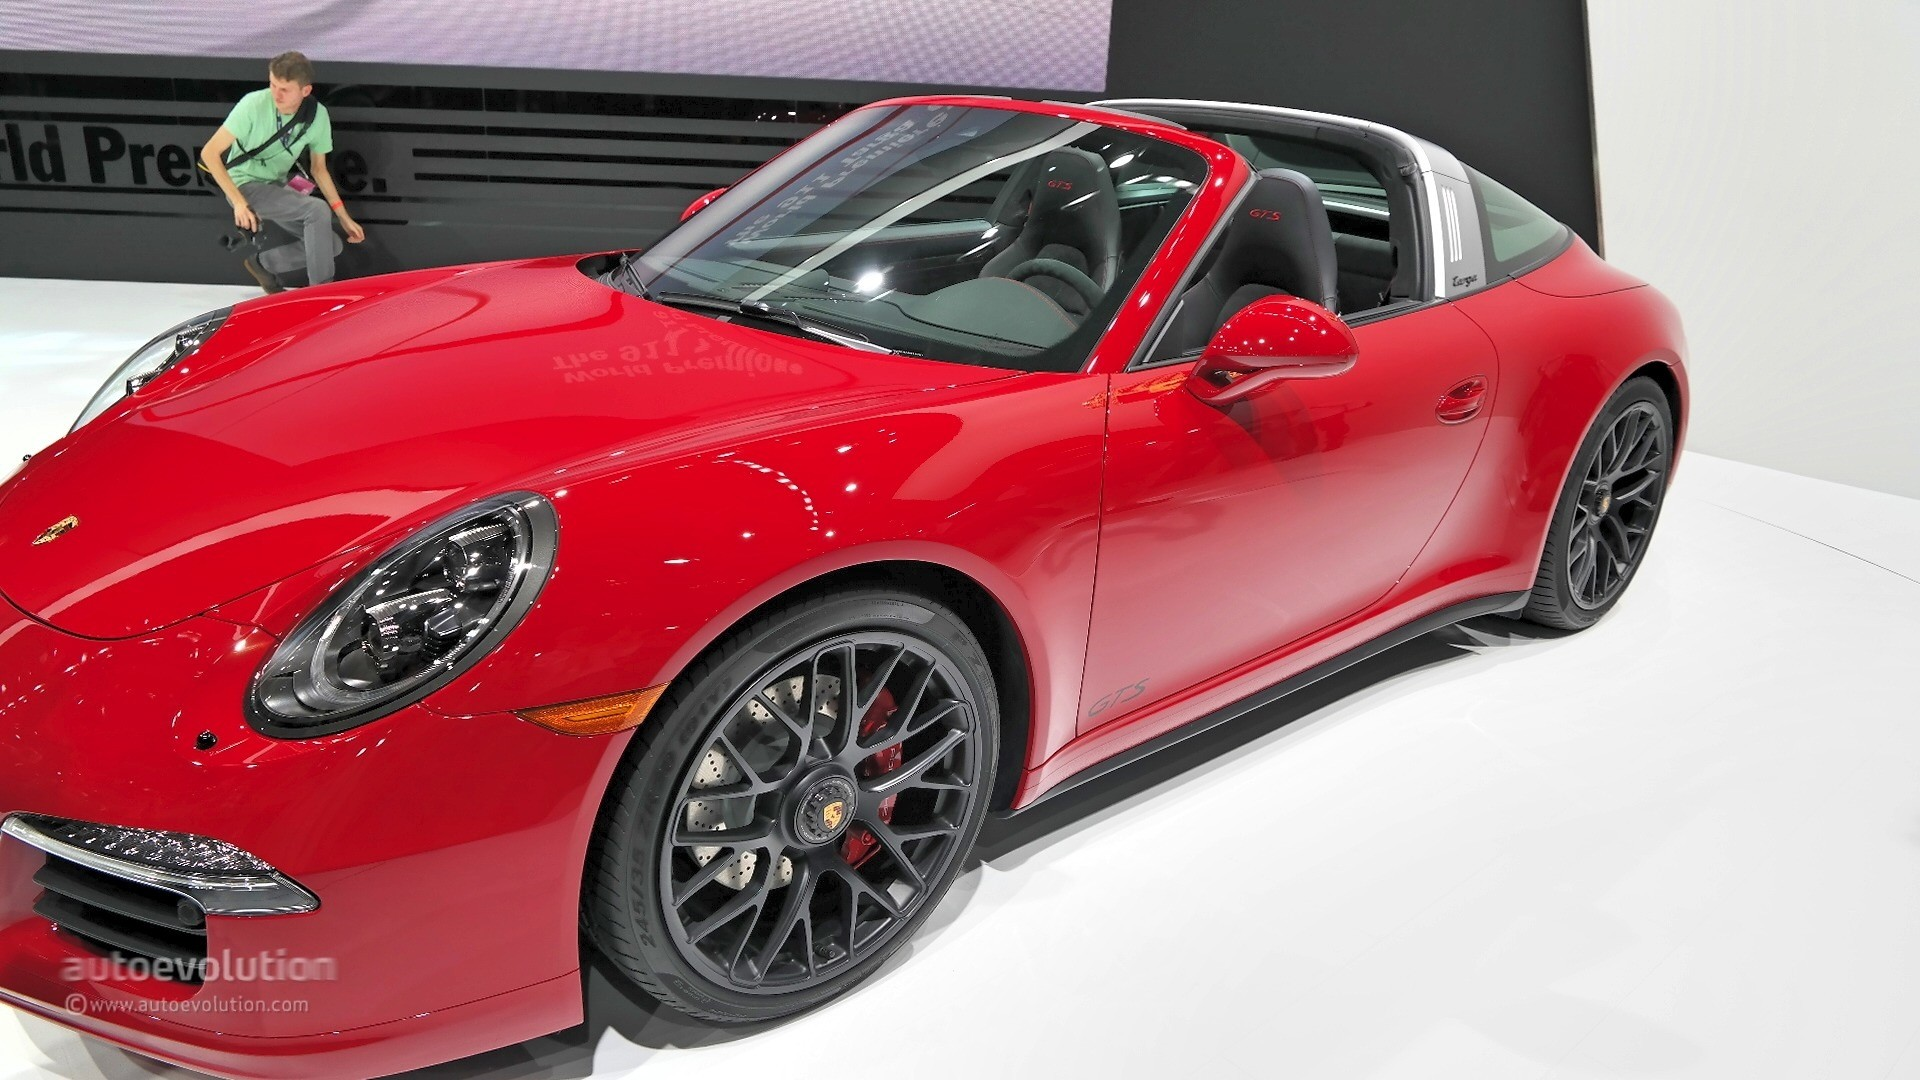 Porsche 911 Targa 4 Gts Combines Retro And Sport Perfectly